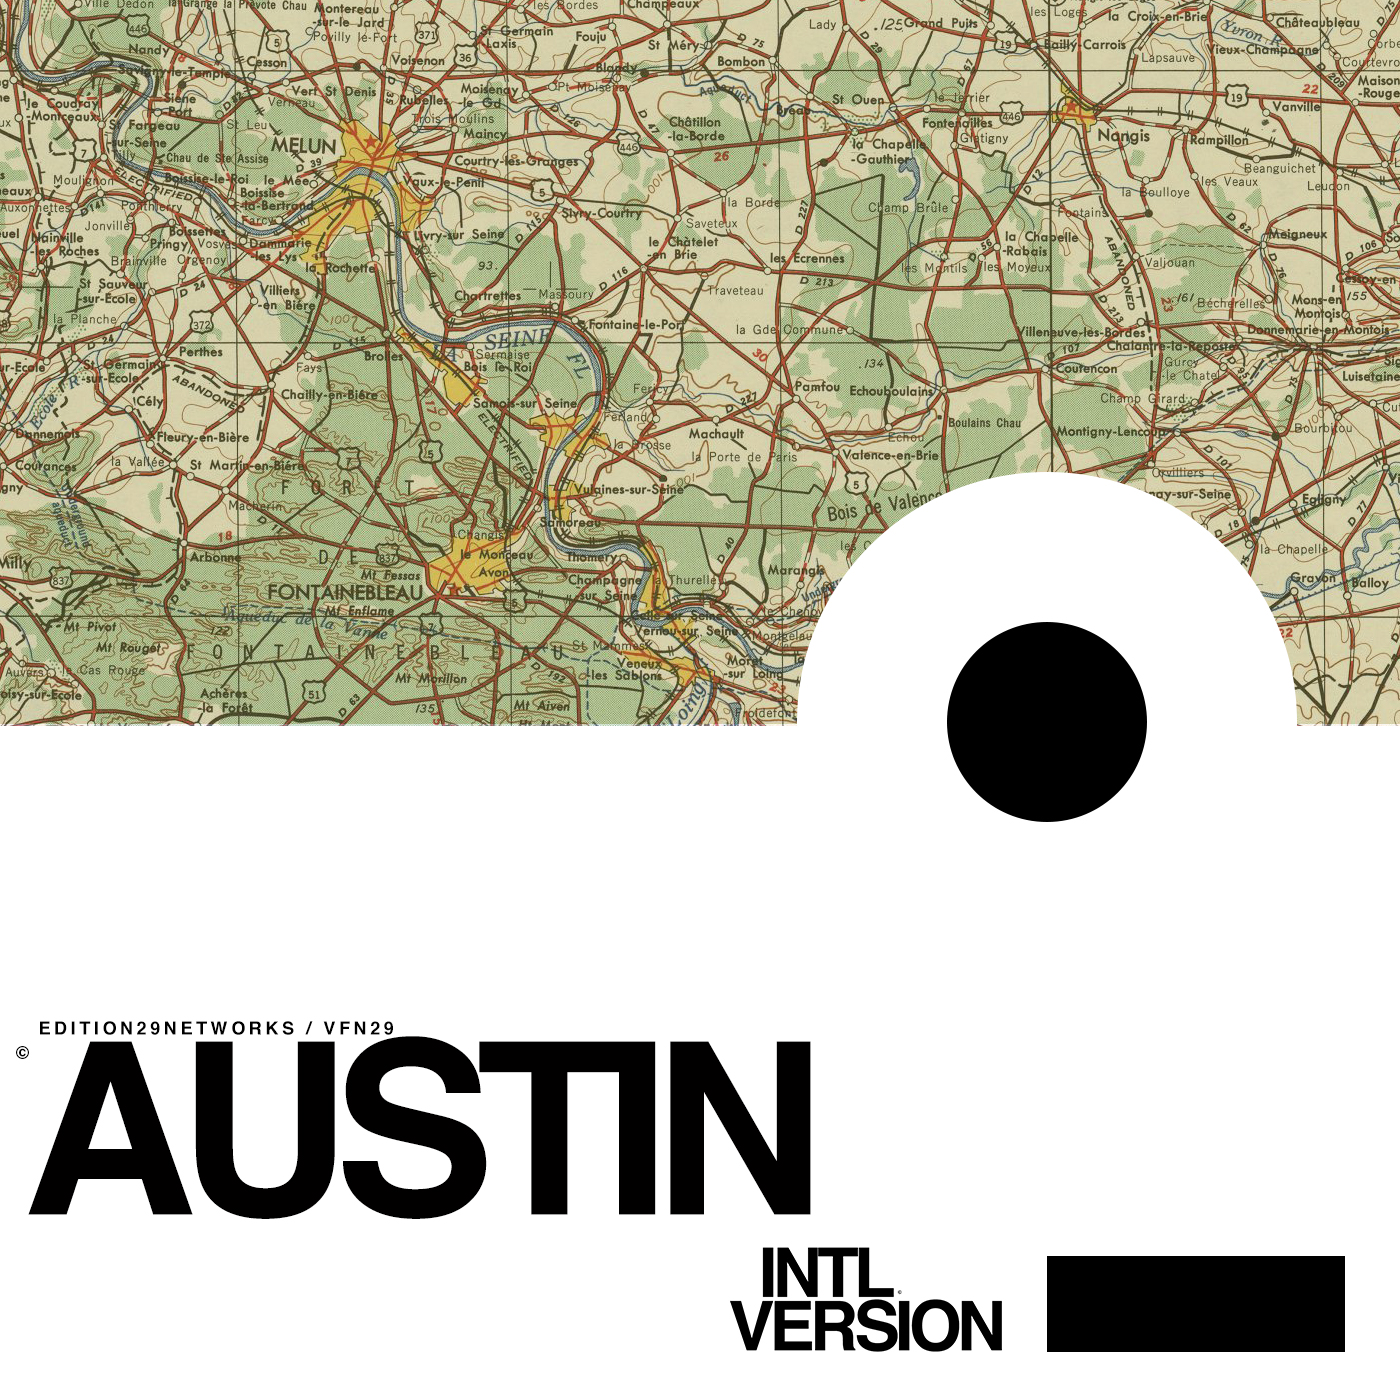 AUSTIN / INTL VERSION